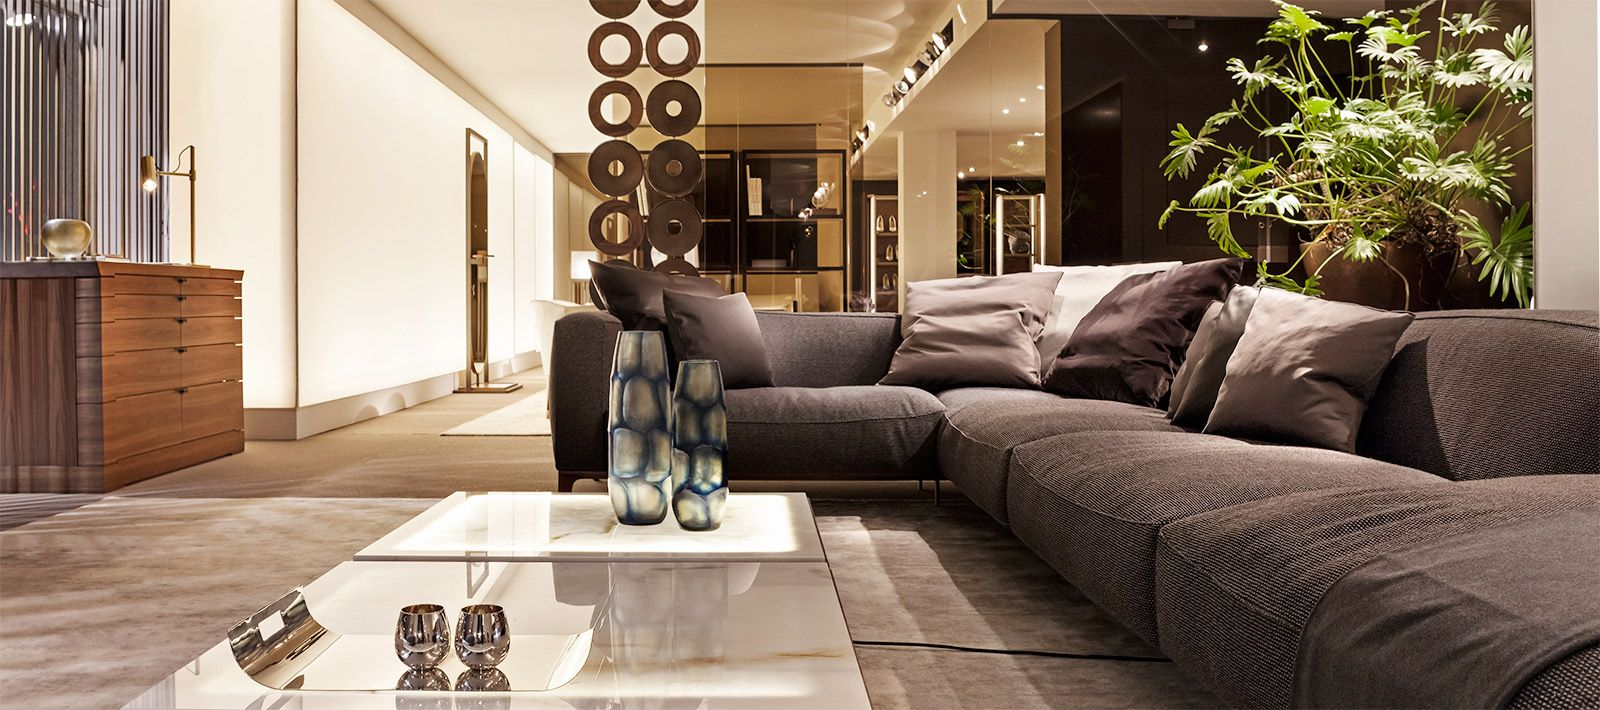 Living Room By Giorgetti For Similar Amazing Interior And